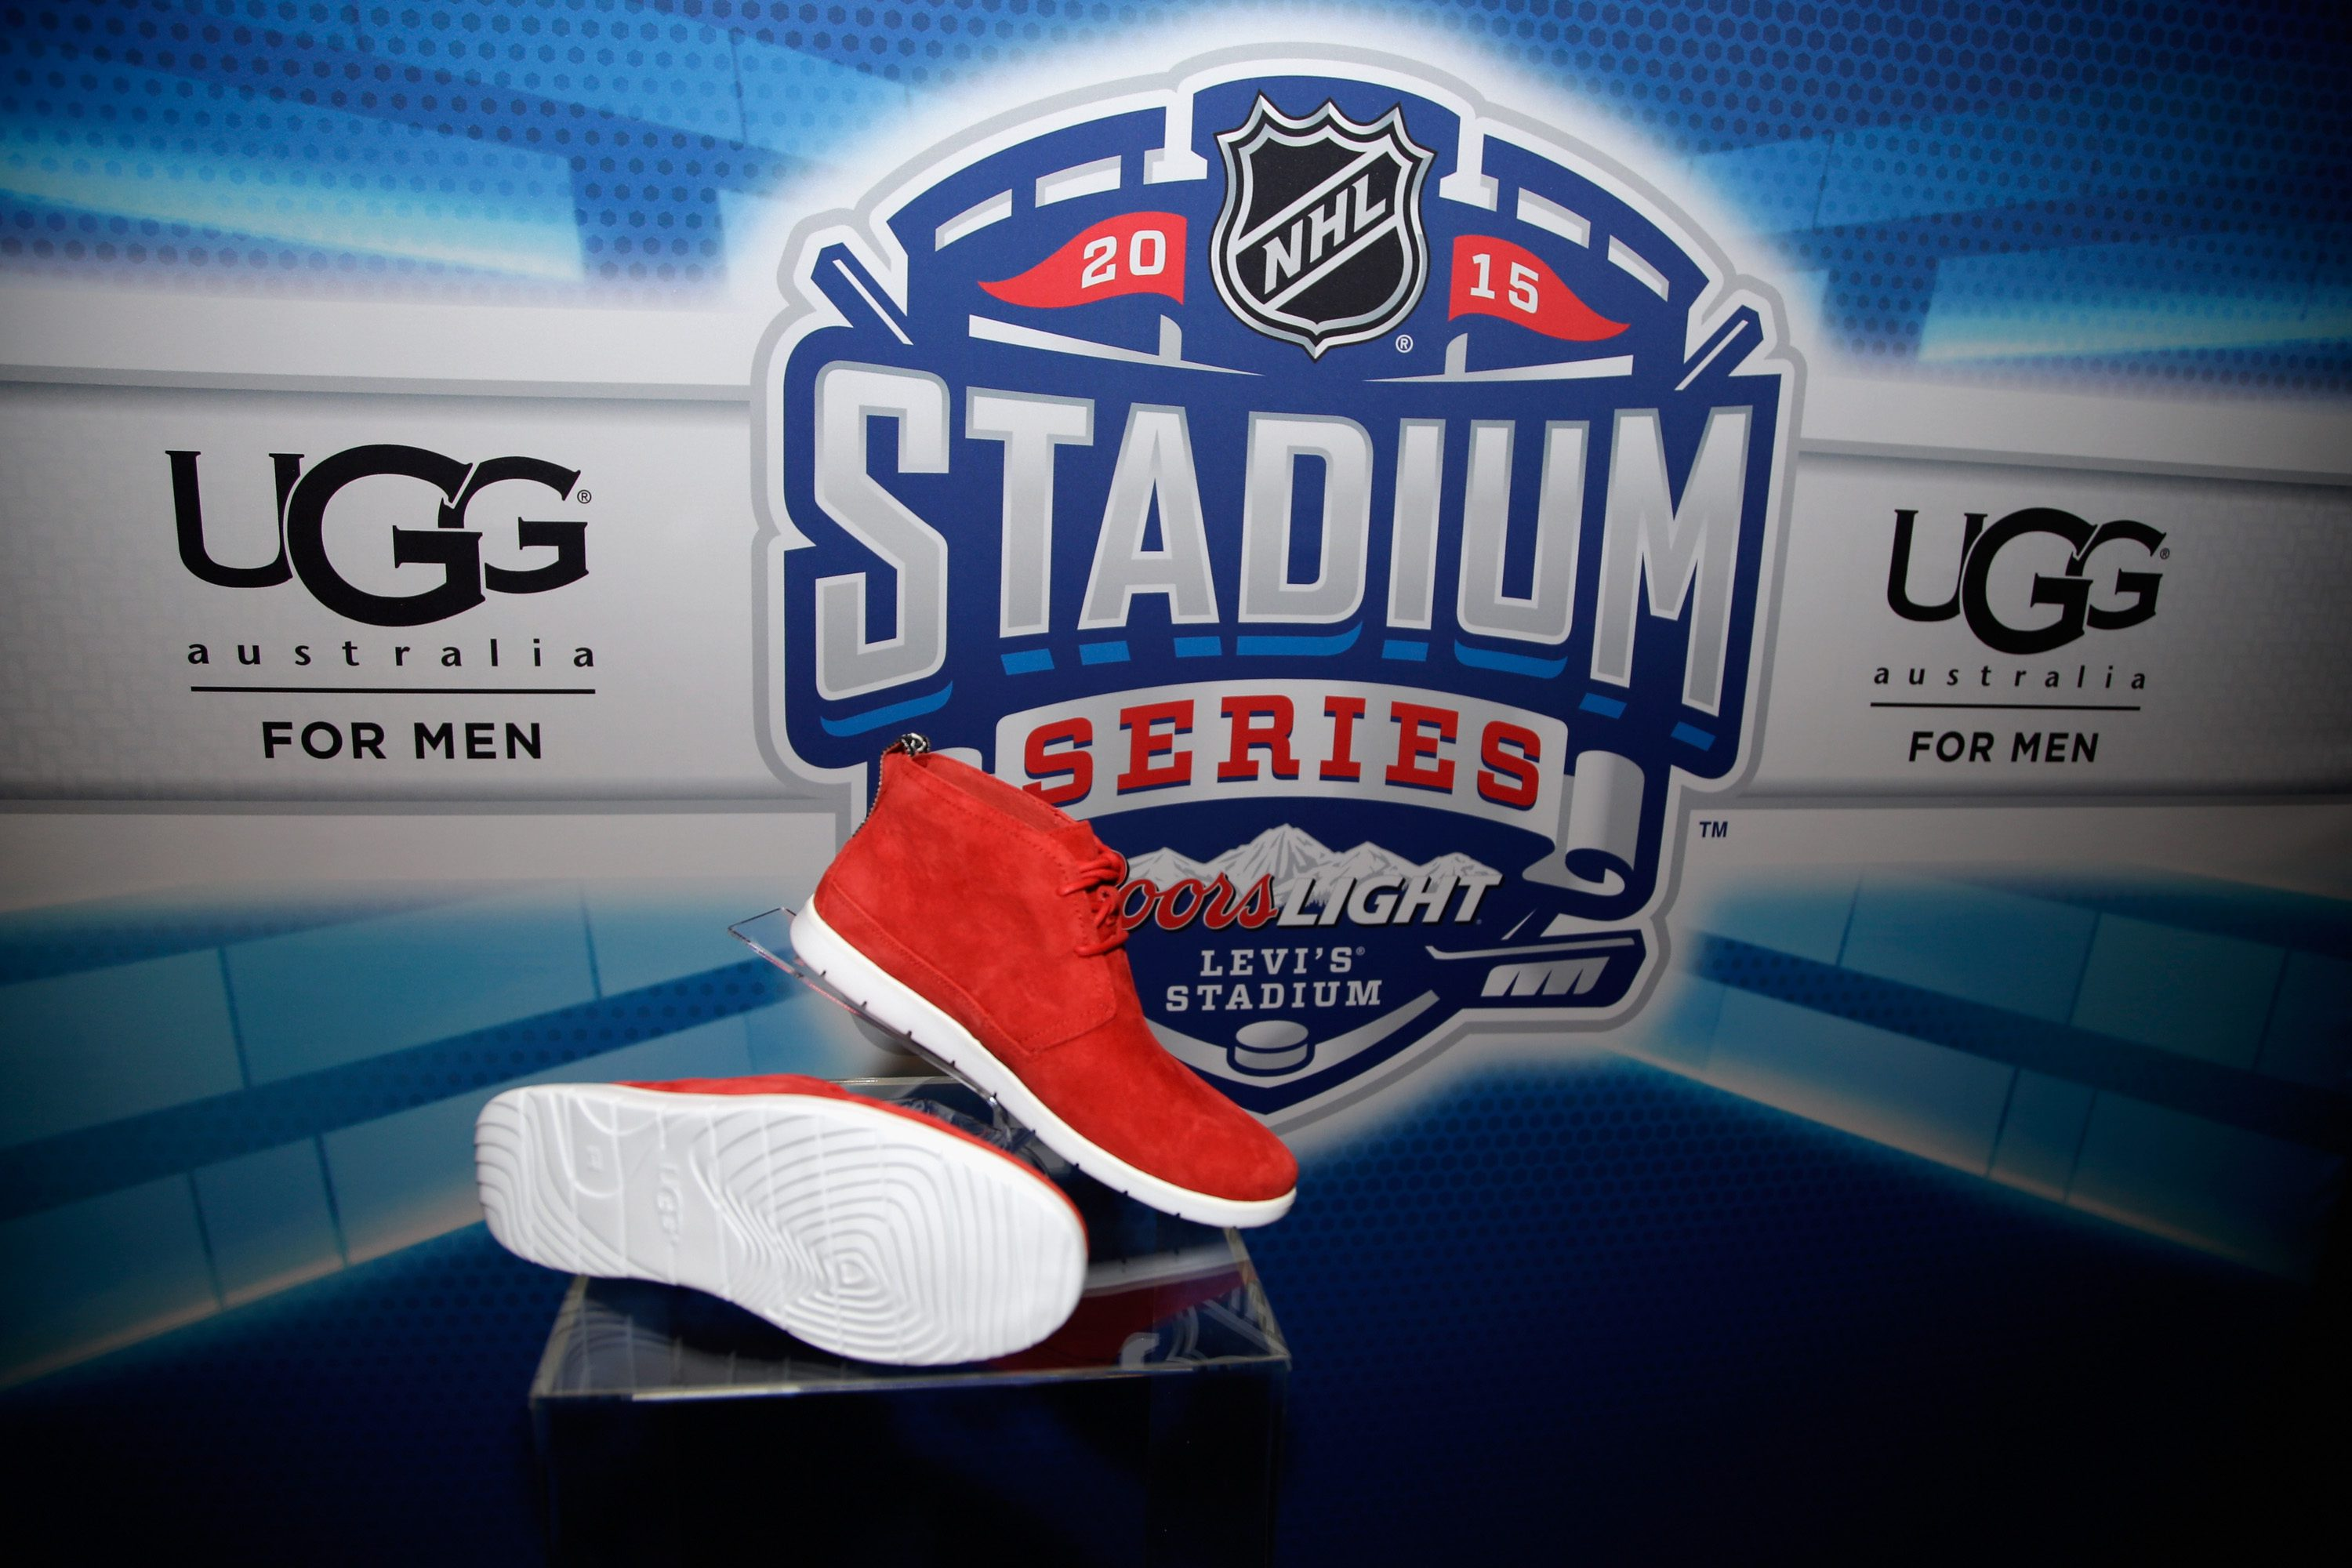 2015 Coors Light Stadium Series - UGG Lounge